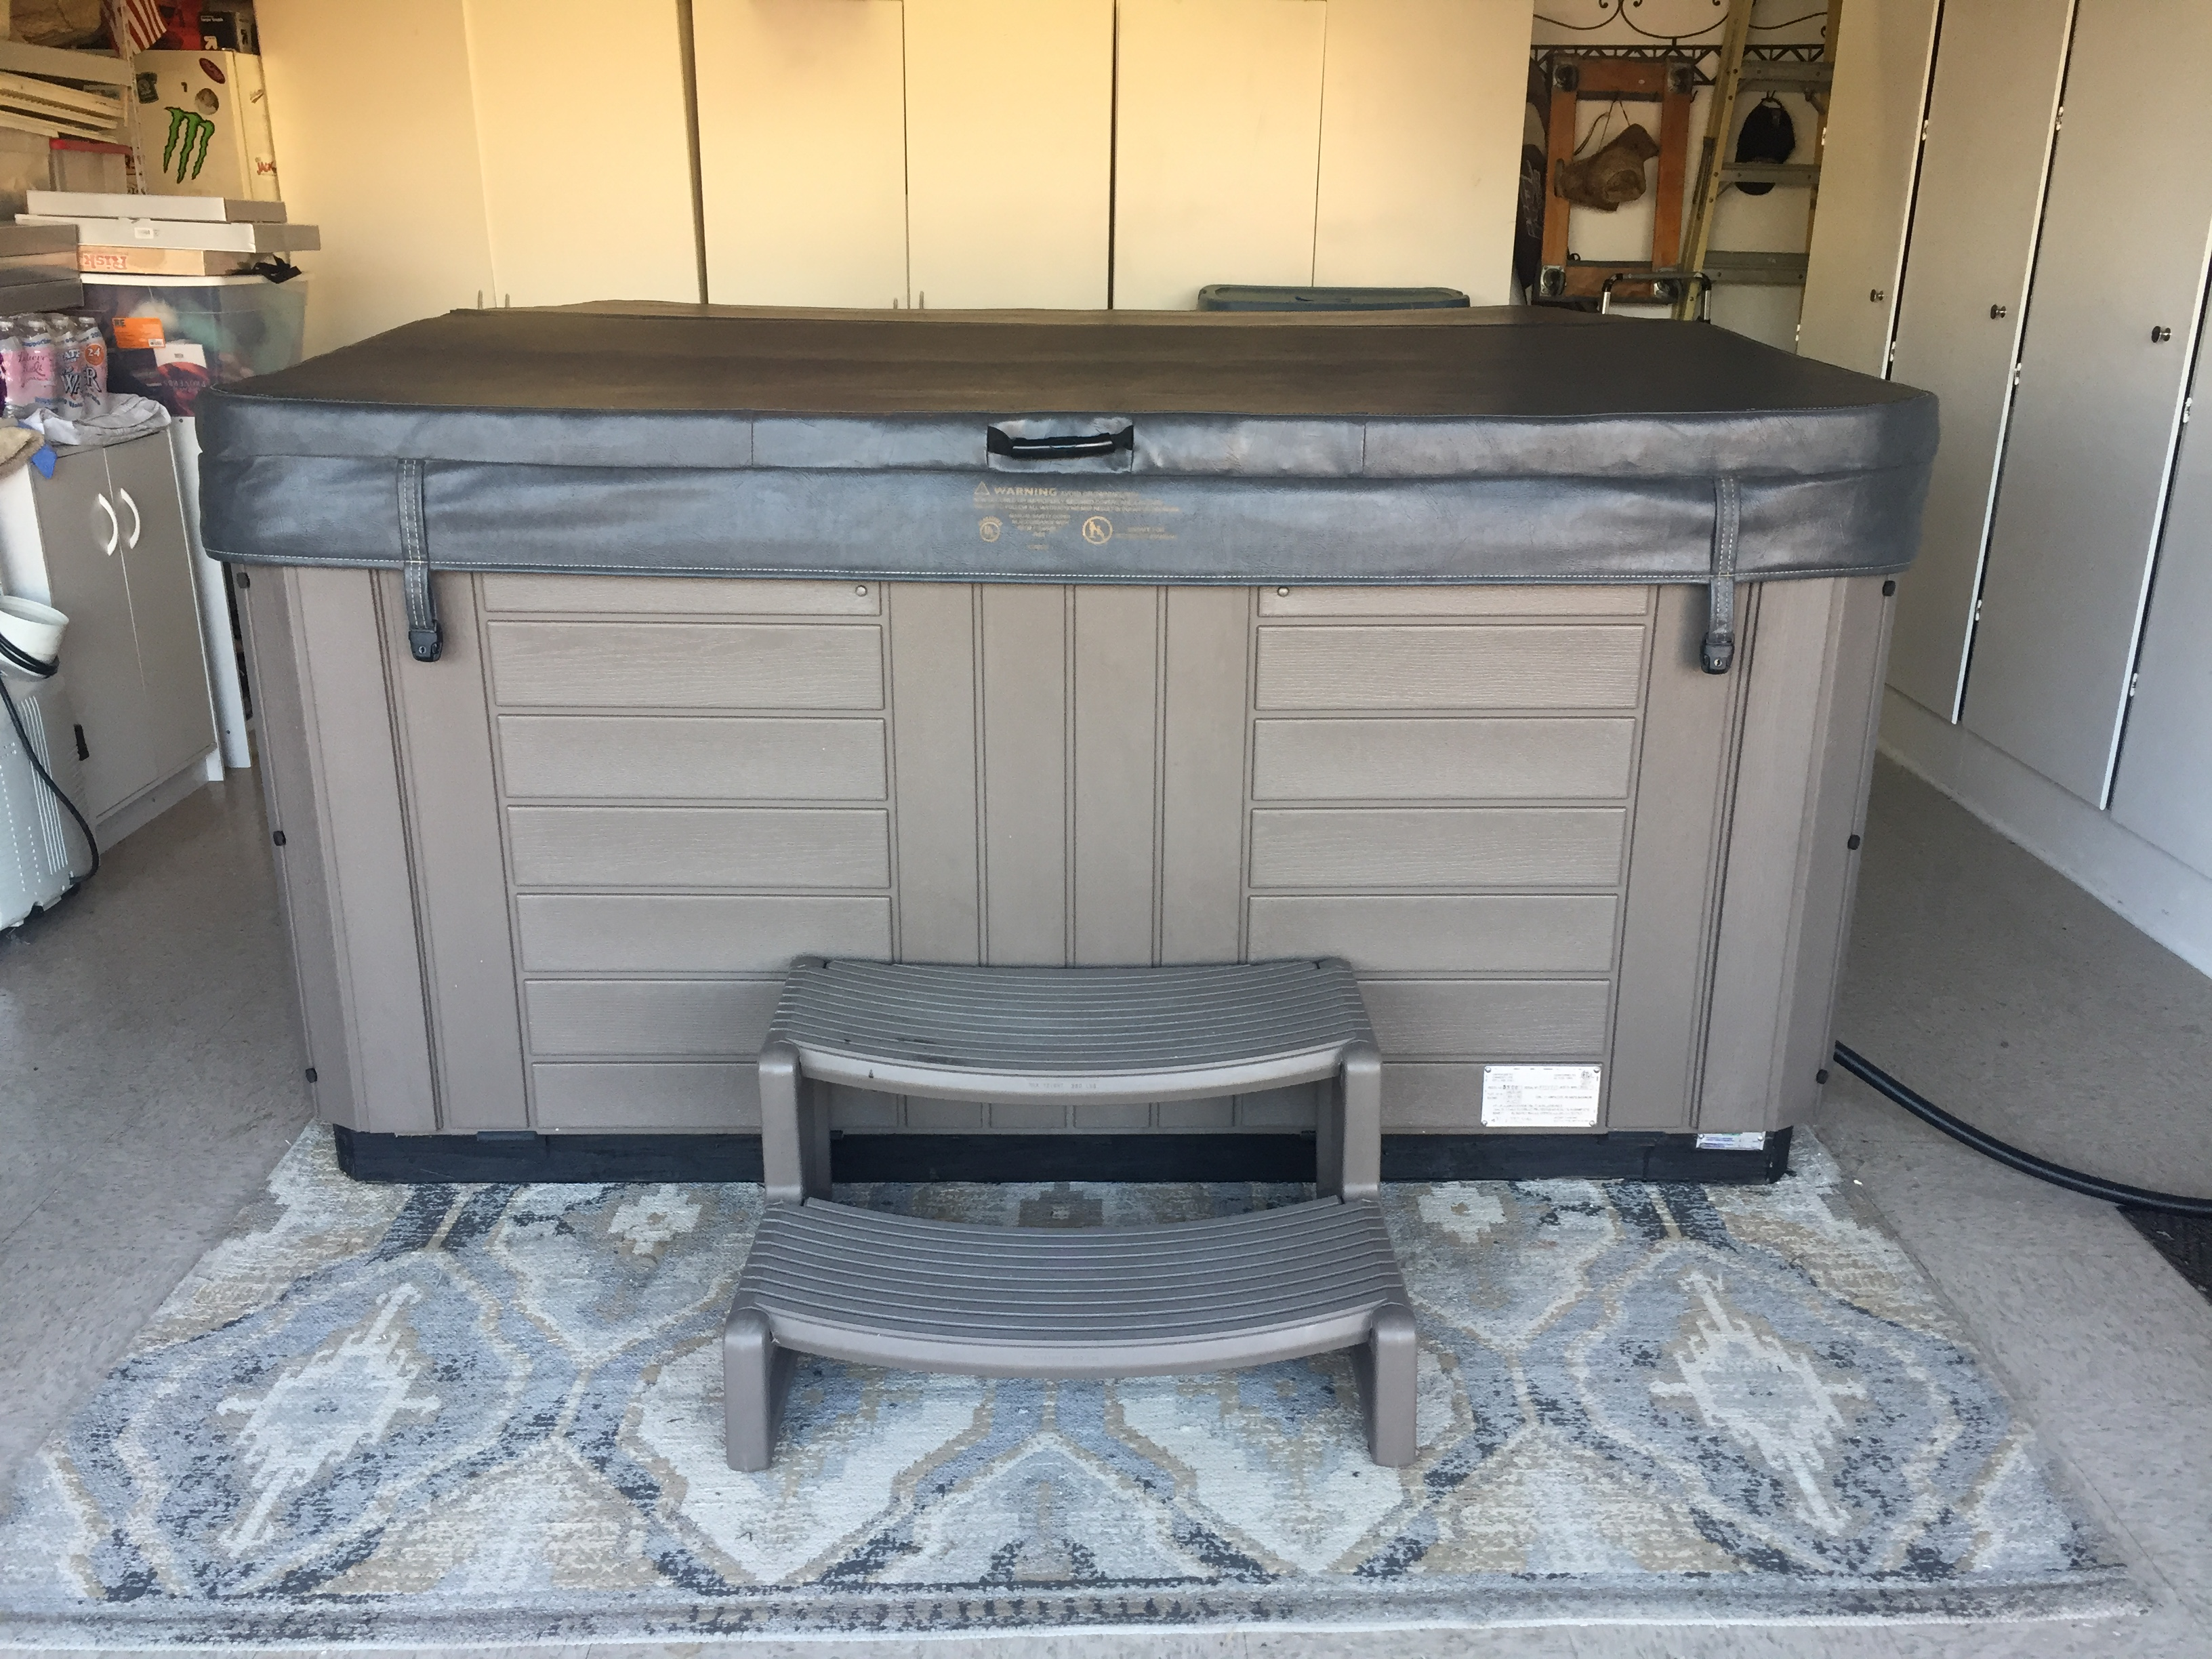 Awesome High End 2015 Master Spas 7.2 Twilight Series 6 Seat Spa, Hot Tub, Jacuzzi